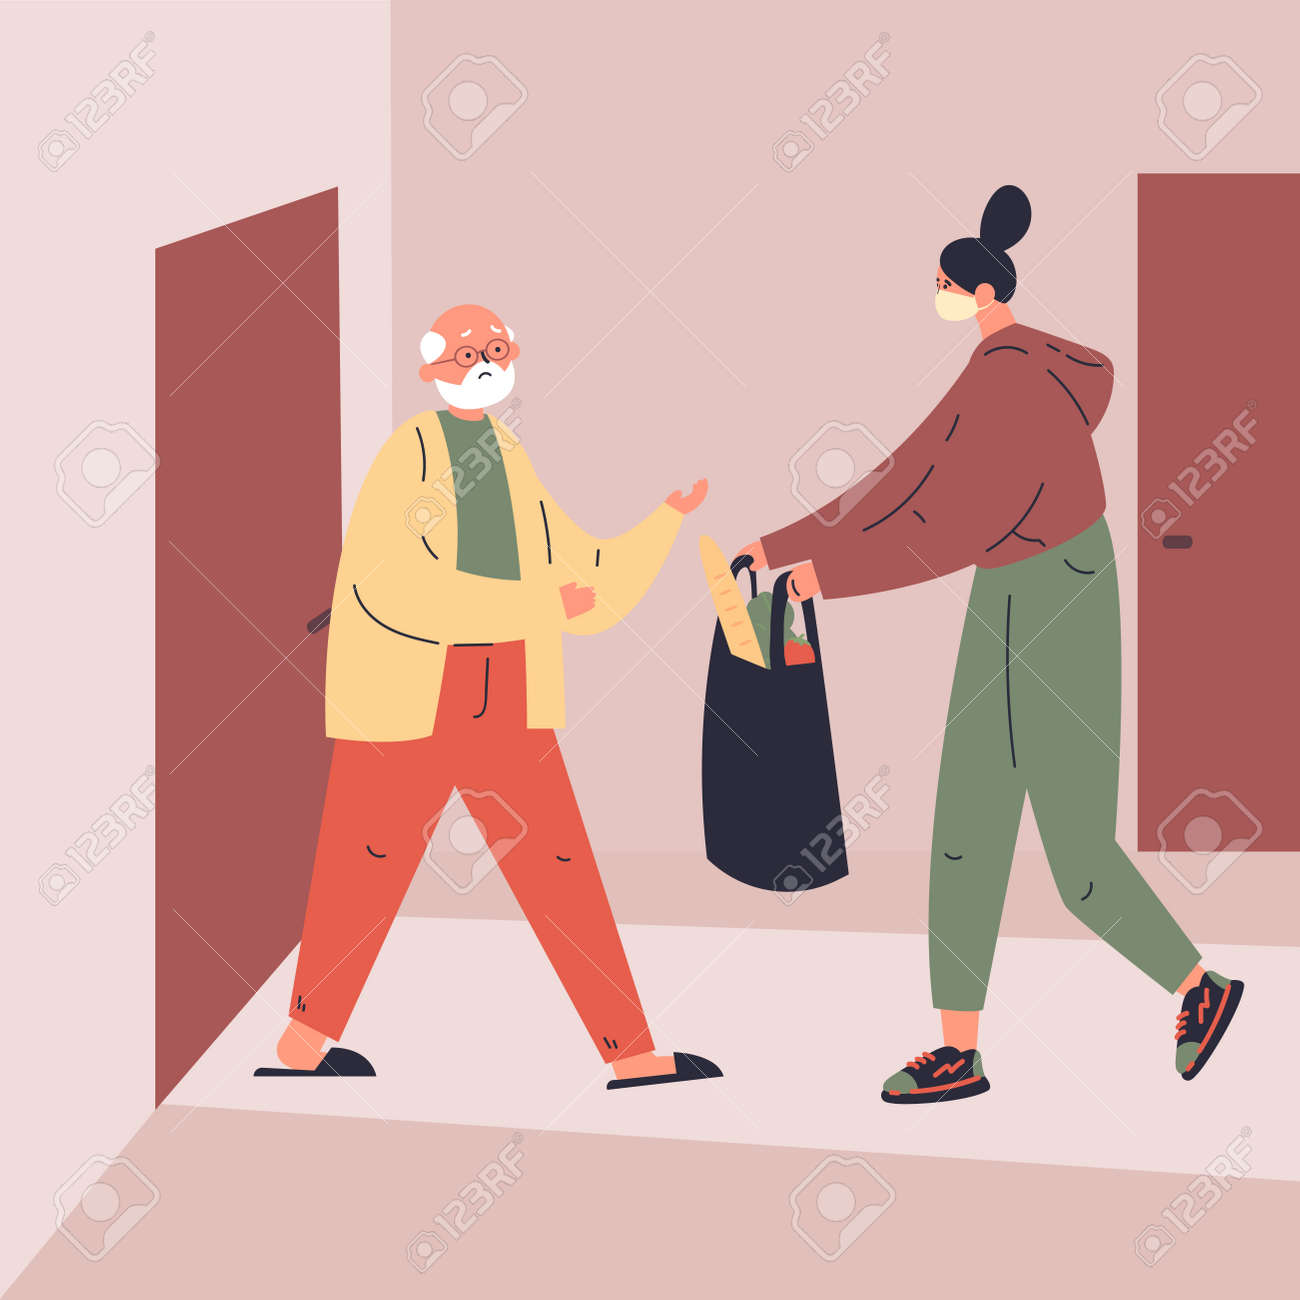 Coronavirus. Novel virus 2019-nCoV.Delivery of food to old man.A young woman helps an elderly neighbor.Caring for people at risk.Concept of coronavirus quarantine vector illustration.Flat character - 143573100